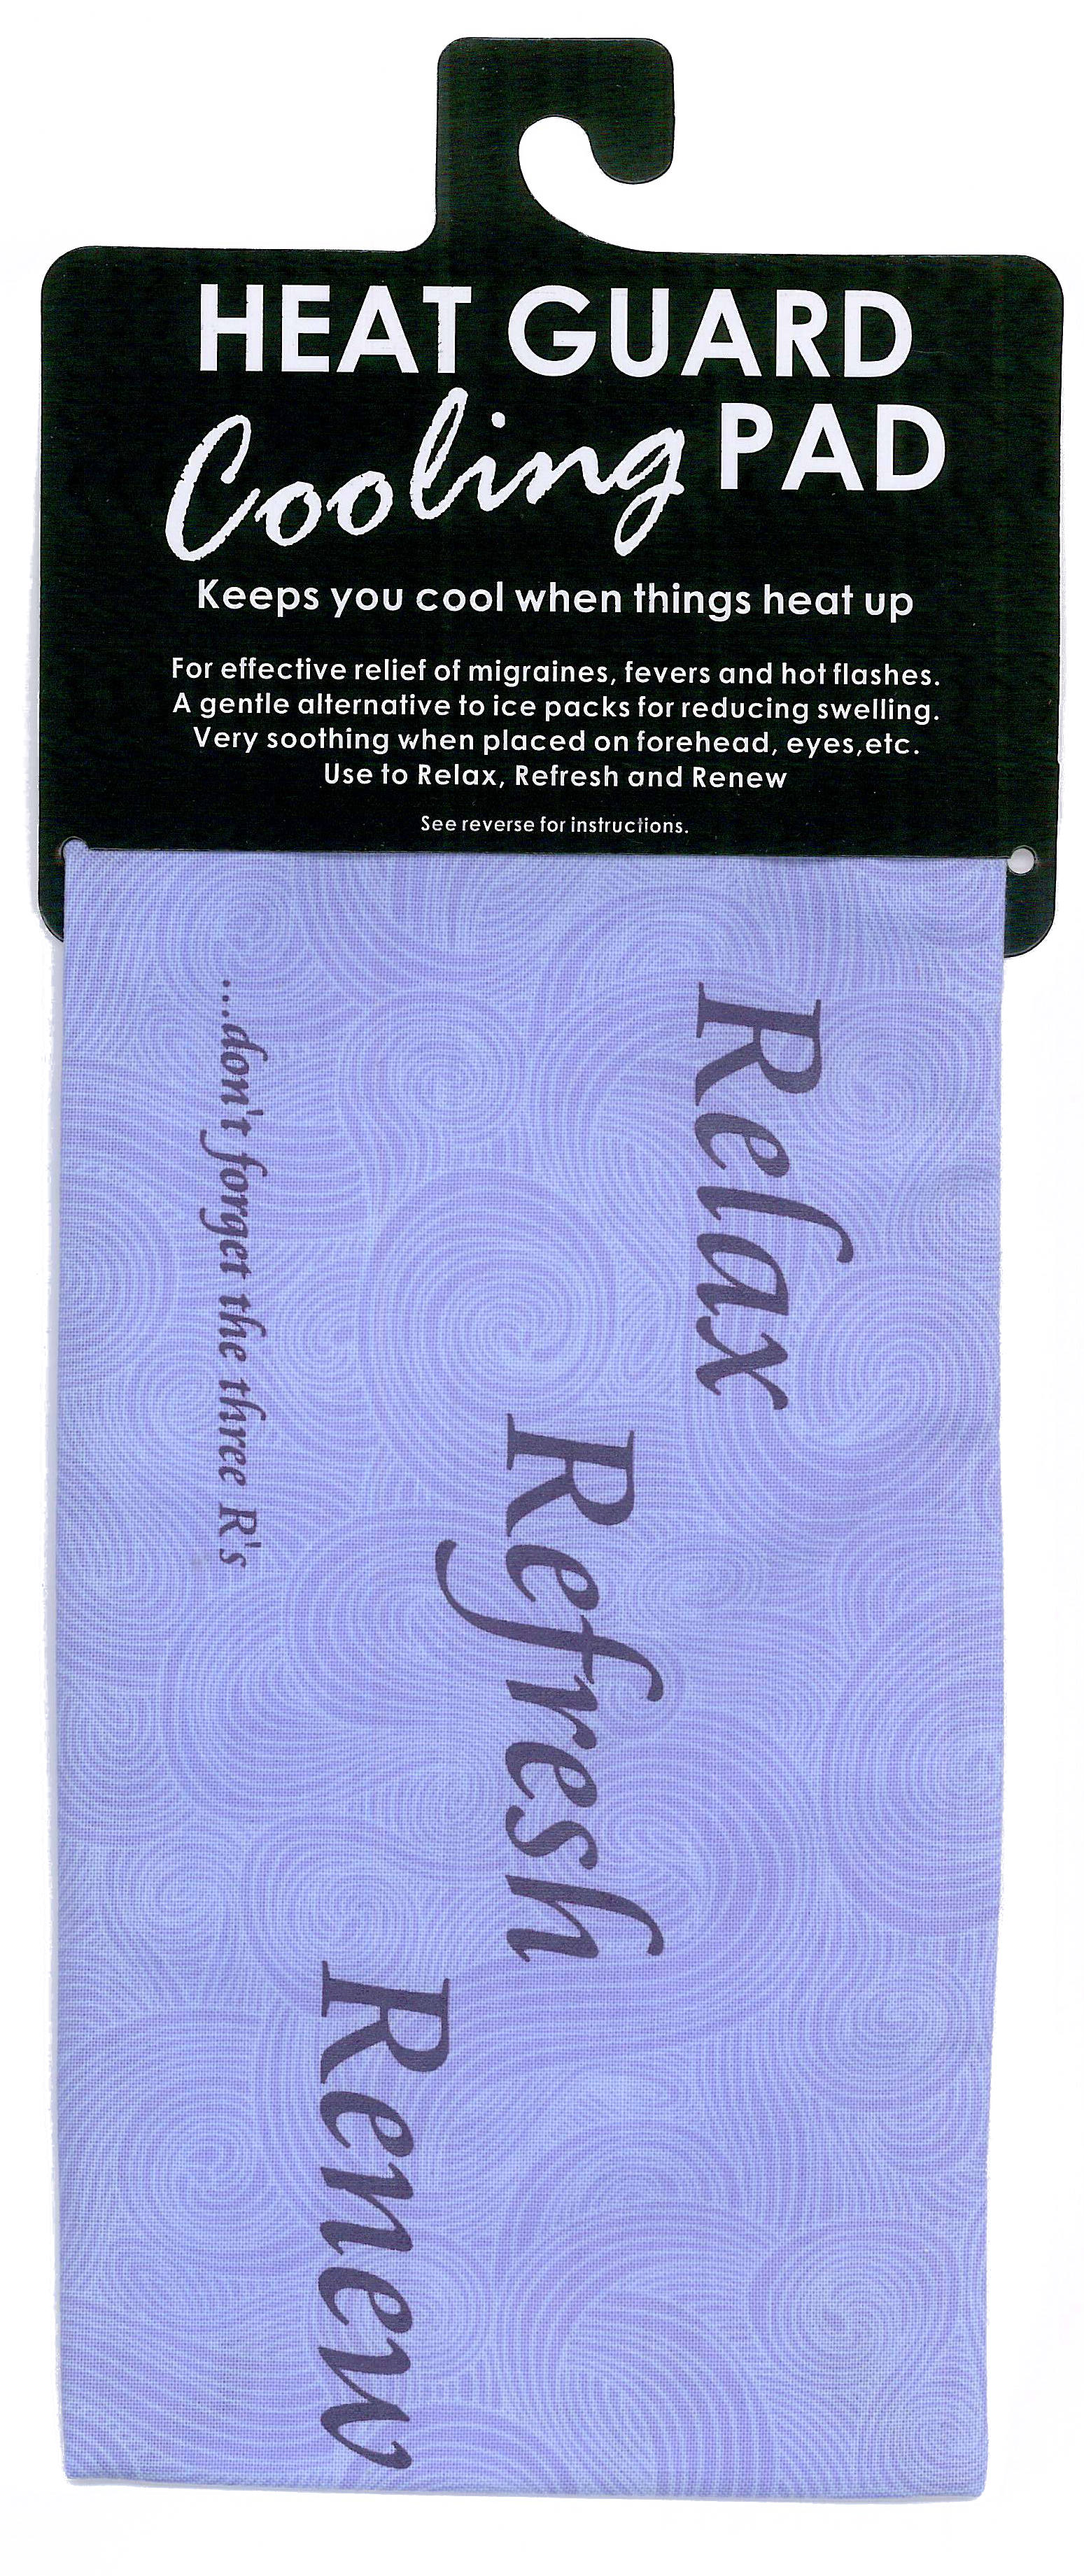 Cooling Pad - Relax Refresh Renew